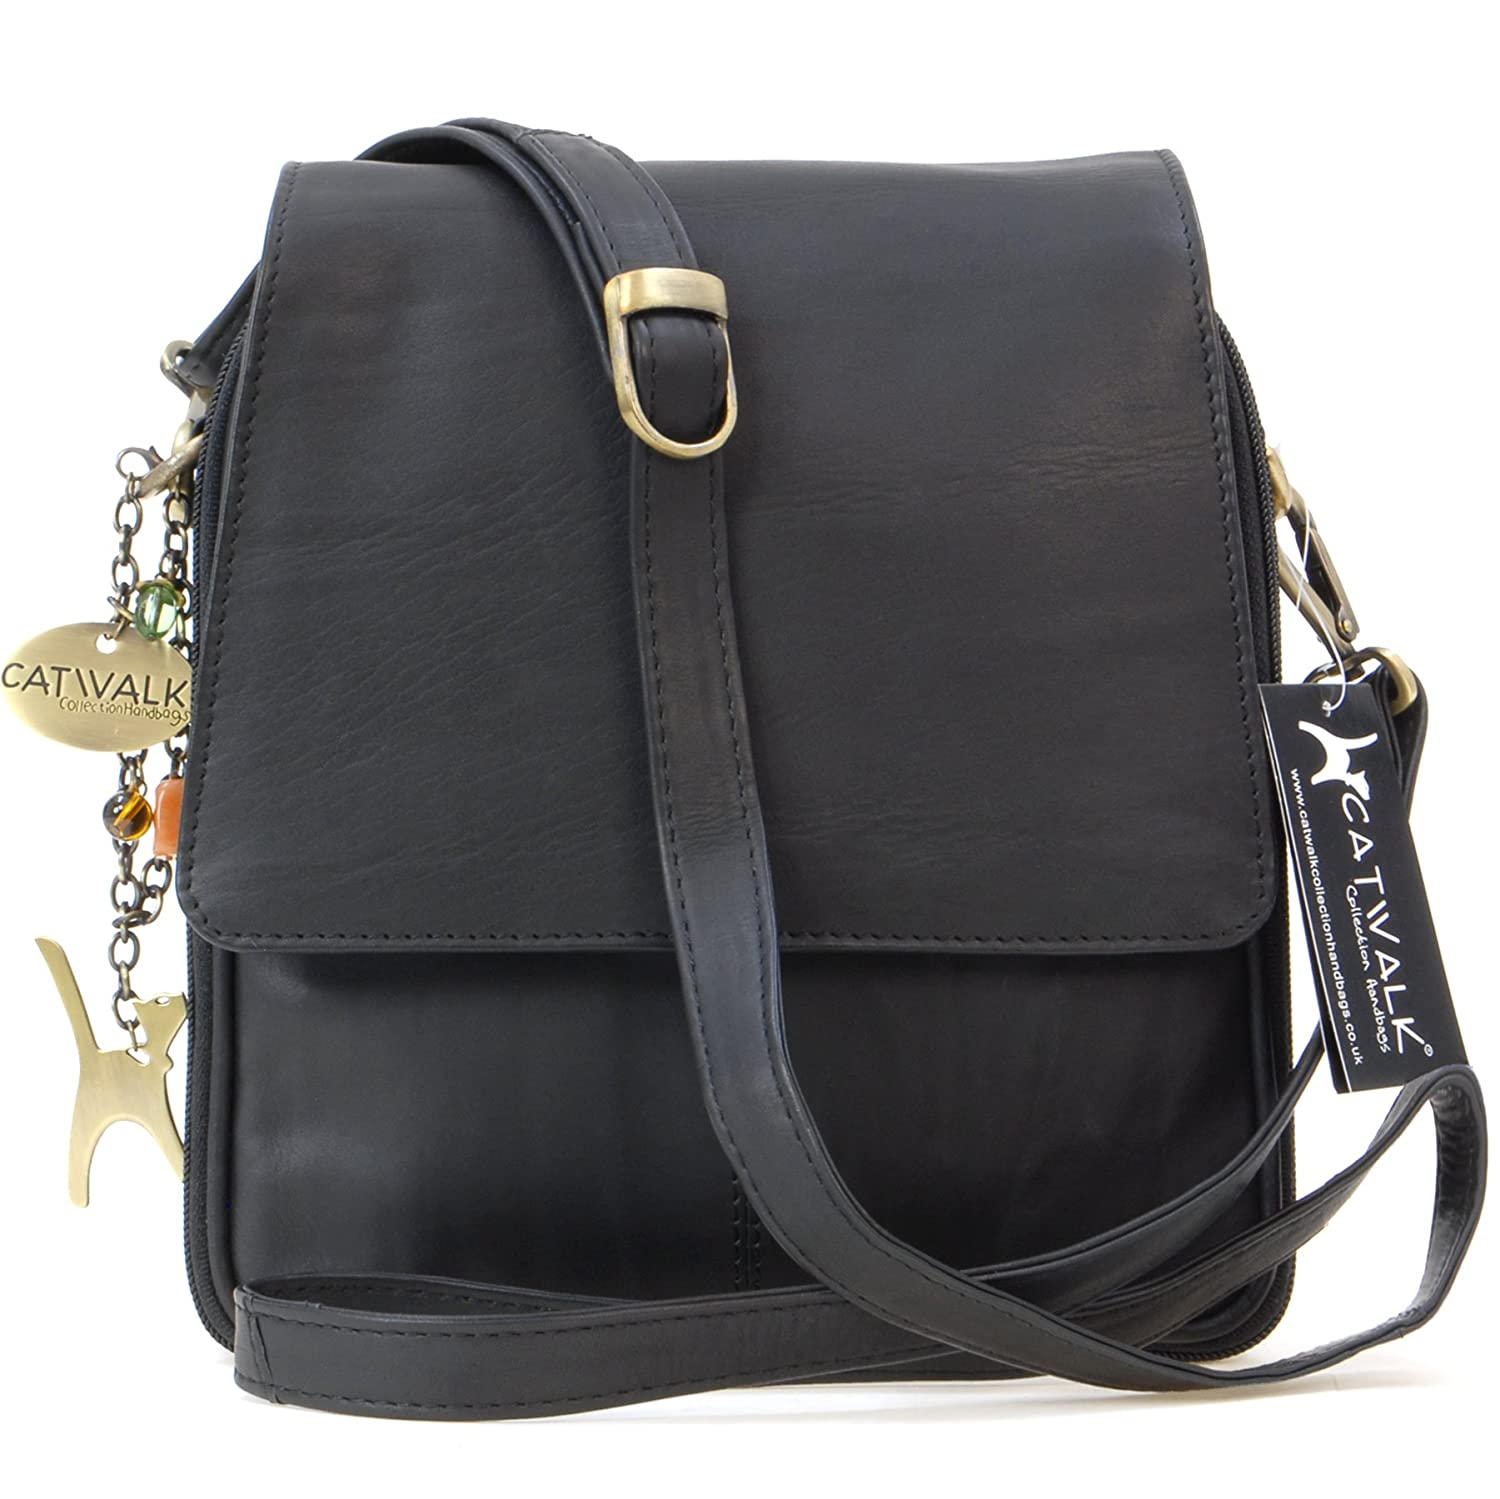 4a29f03f557b Catwalk Collection Leather Organiser Messenger Bag - Metro - Black(Size M)   Amazon.co.uk  Shoes   Bags